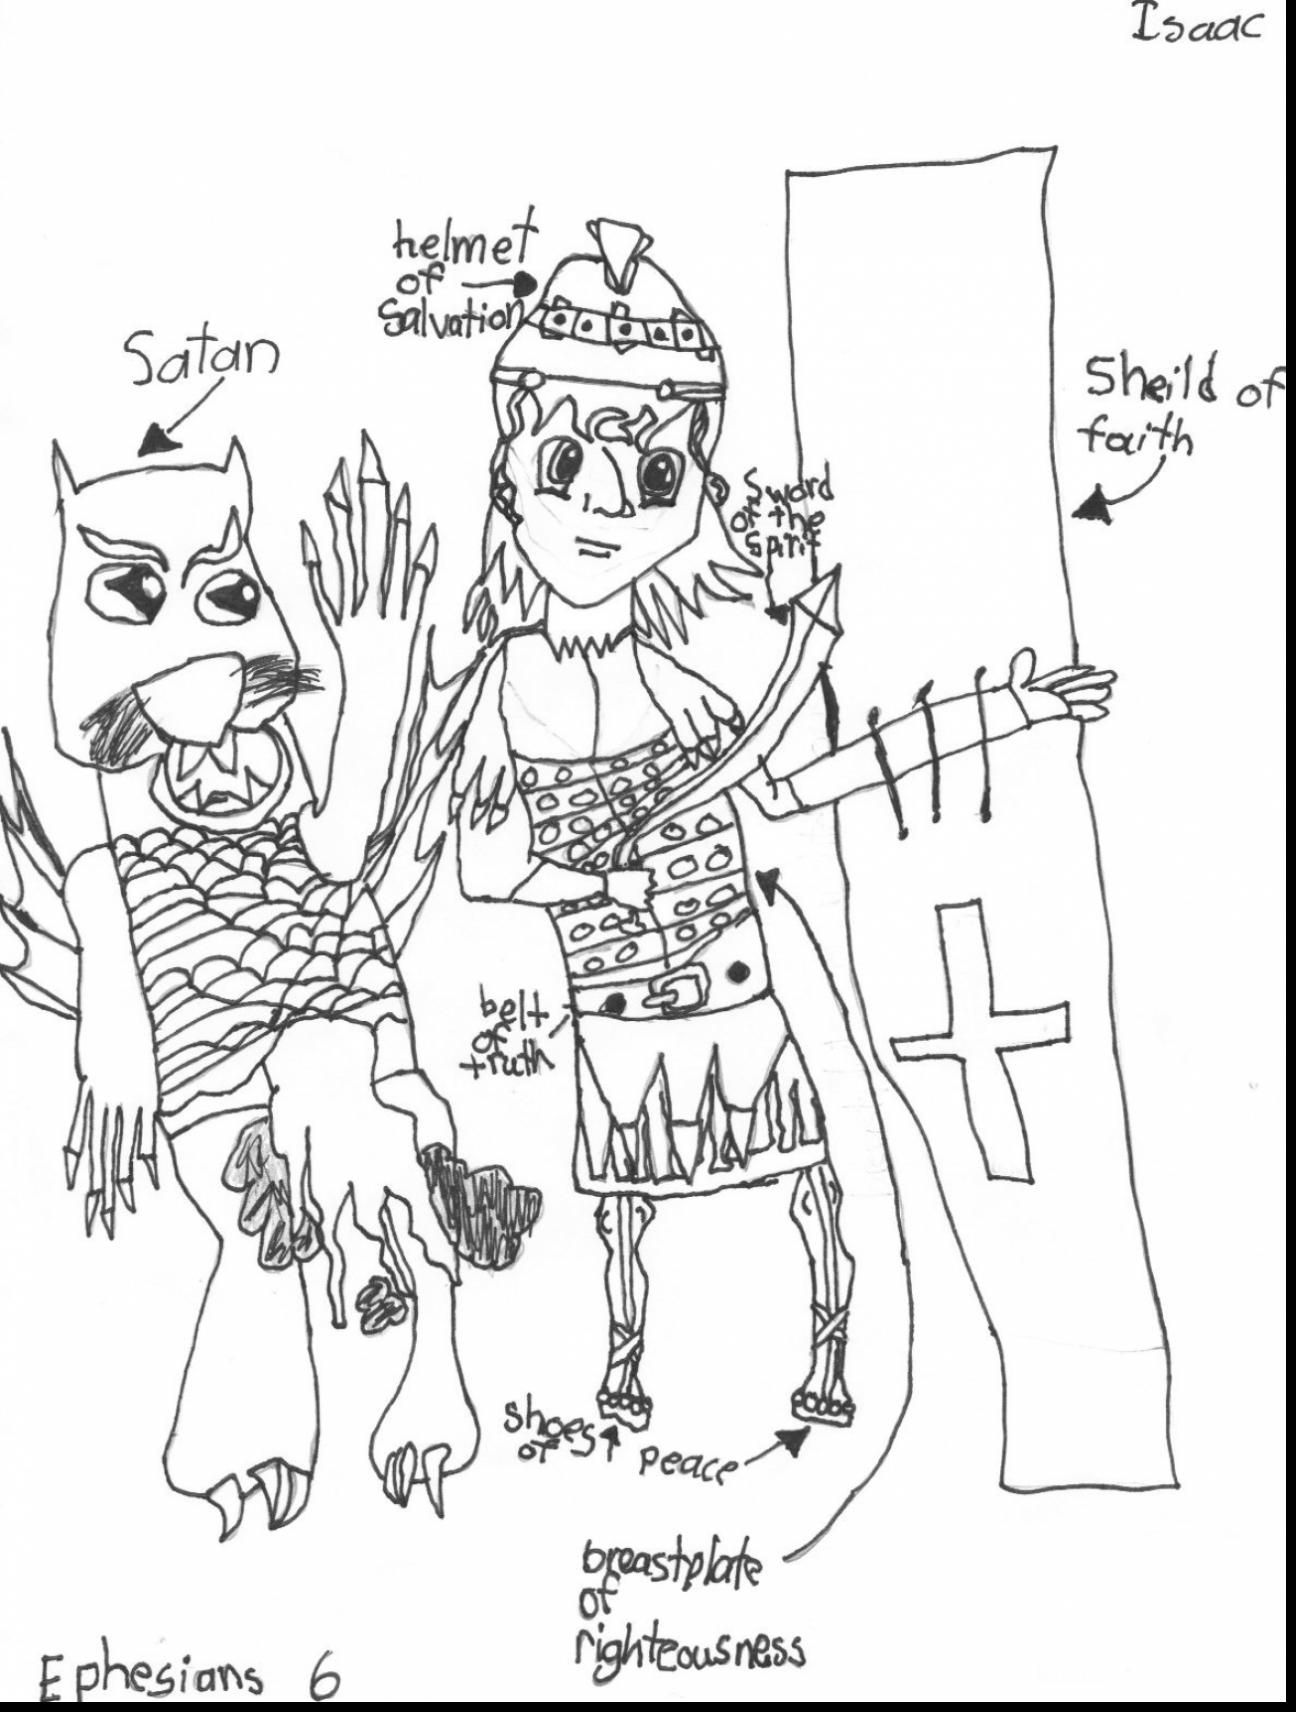 Armor god coloring pages coloring home, batman coloring pages